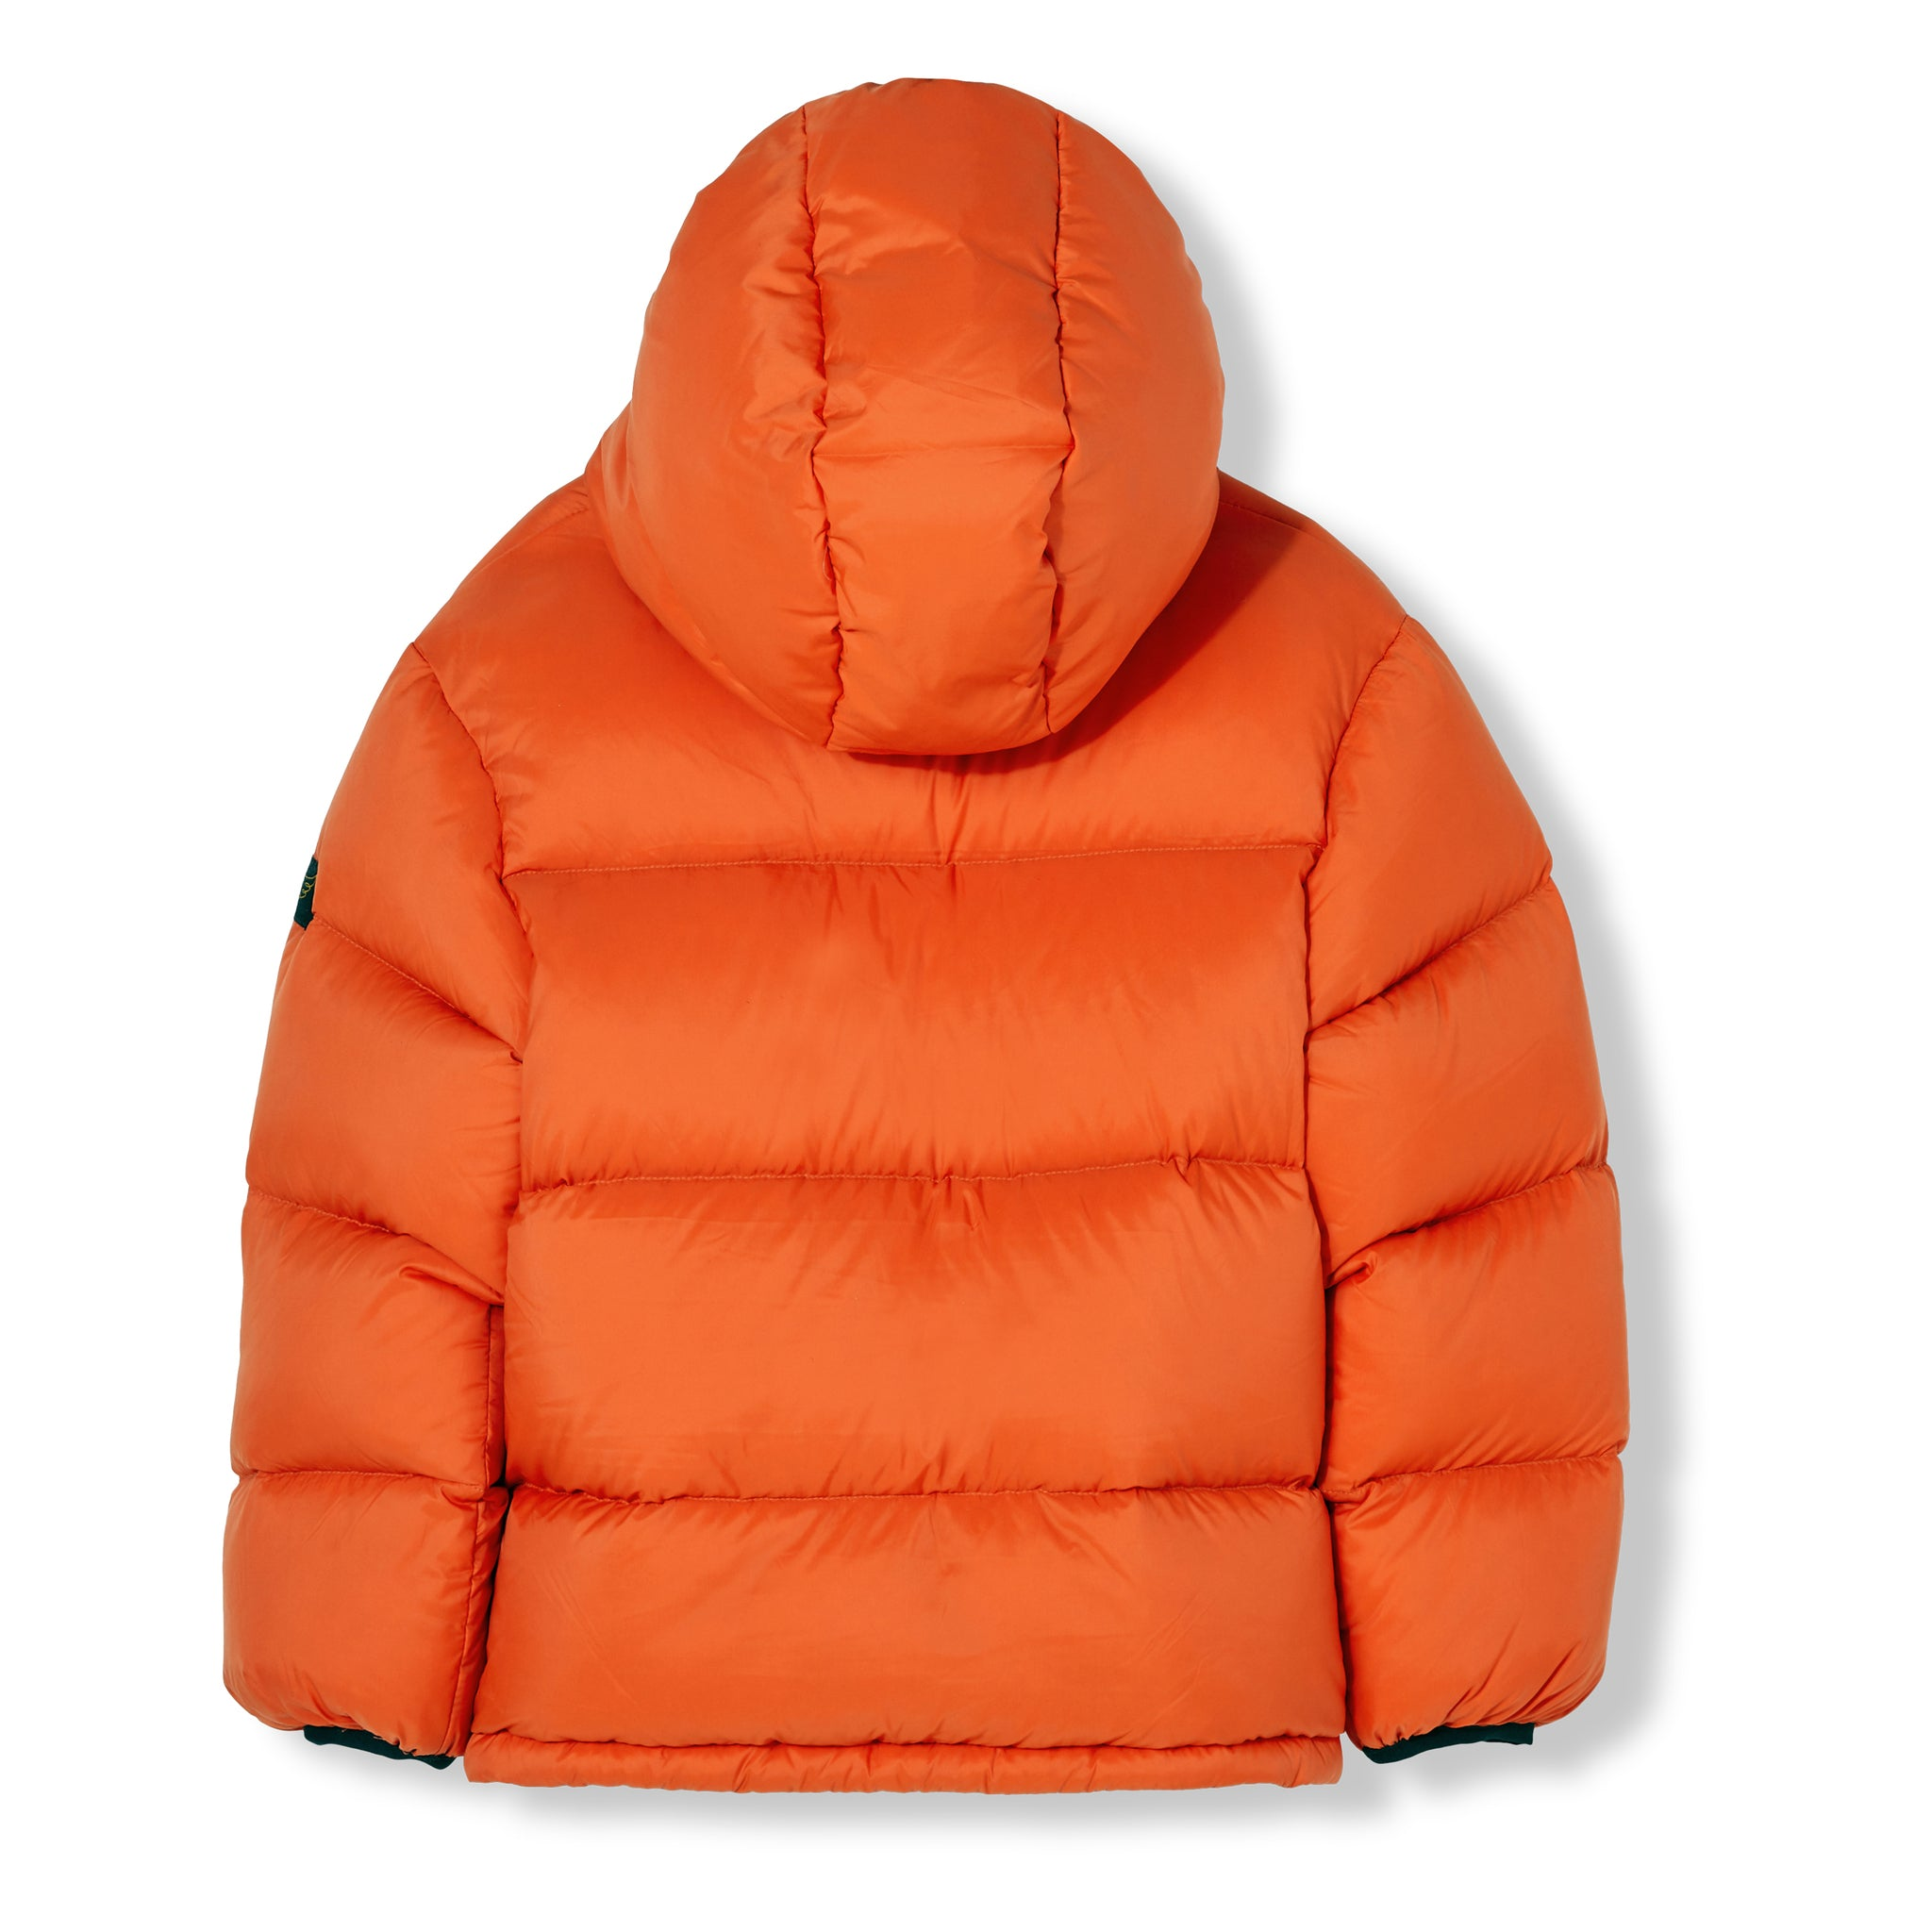 SNOWFLOW Tangerine - Down Jacket 3